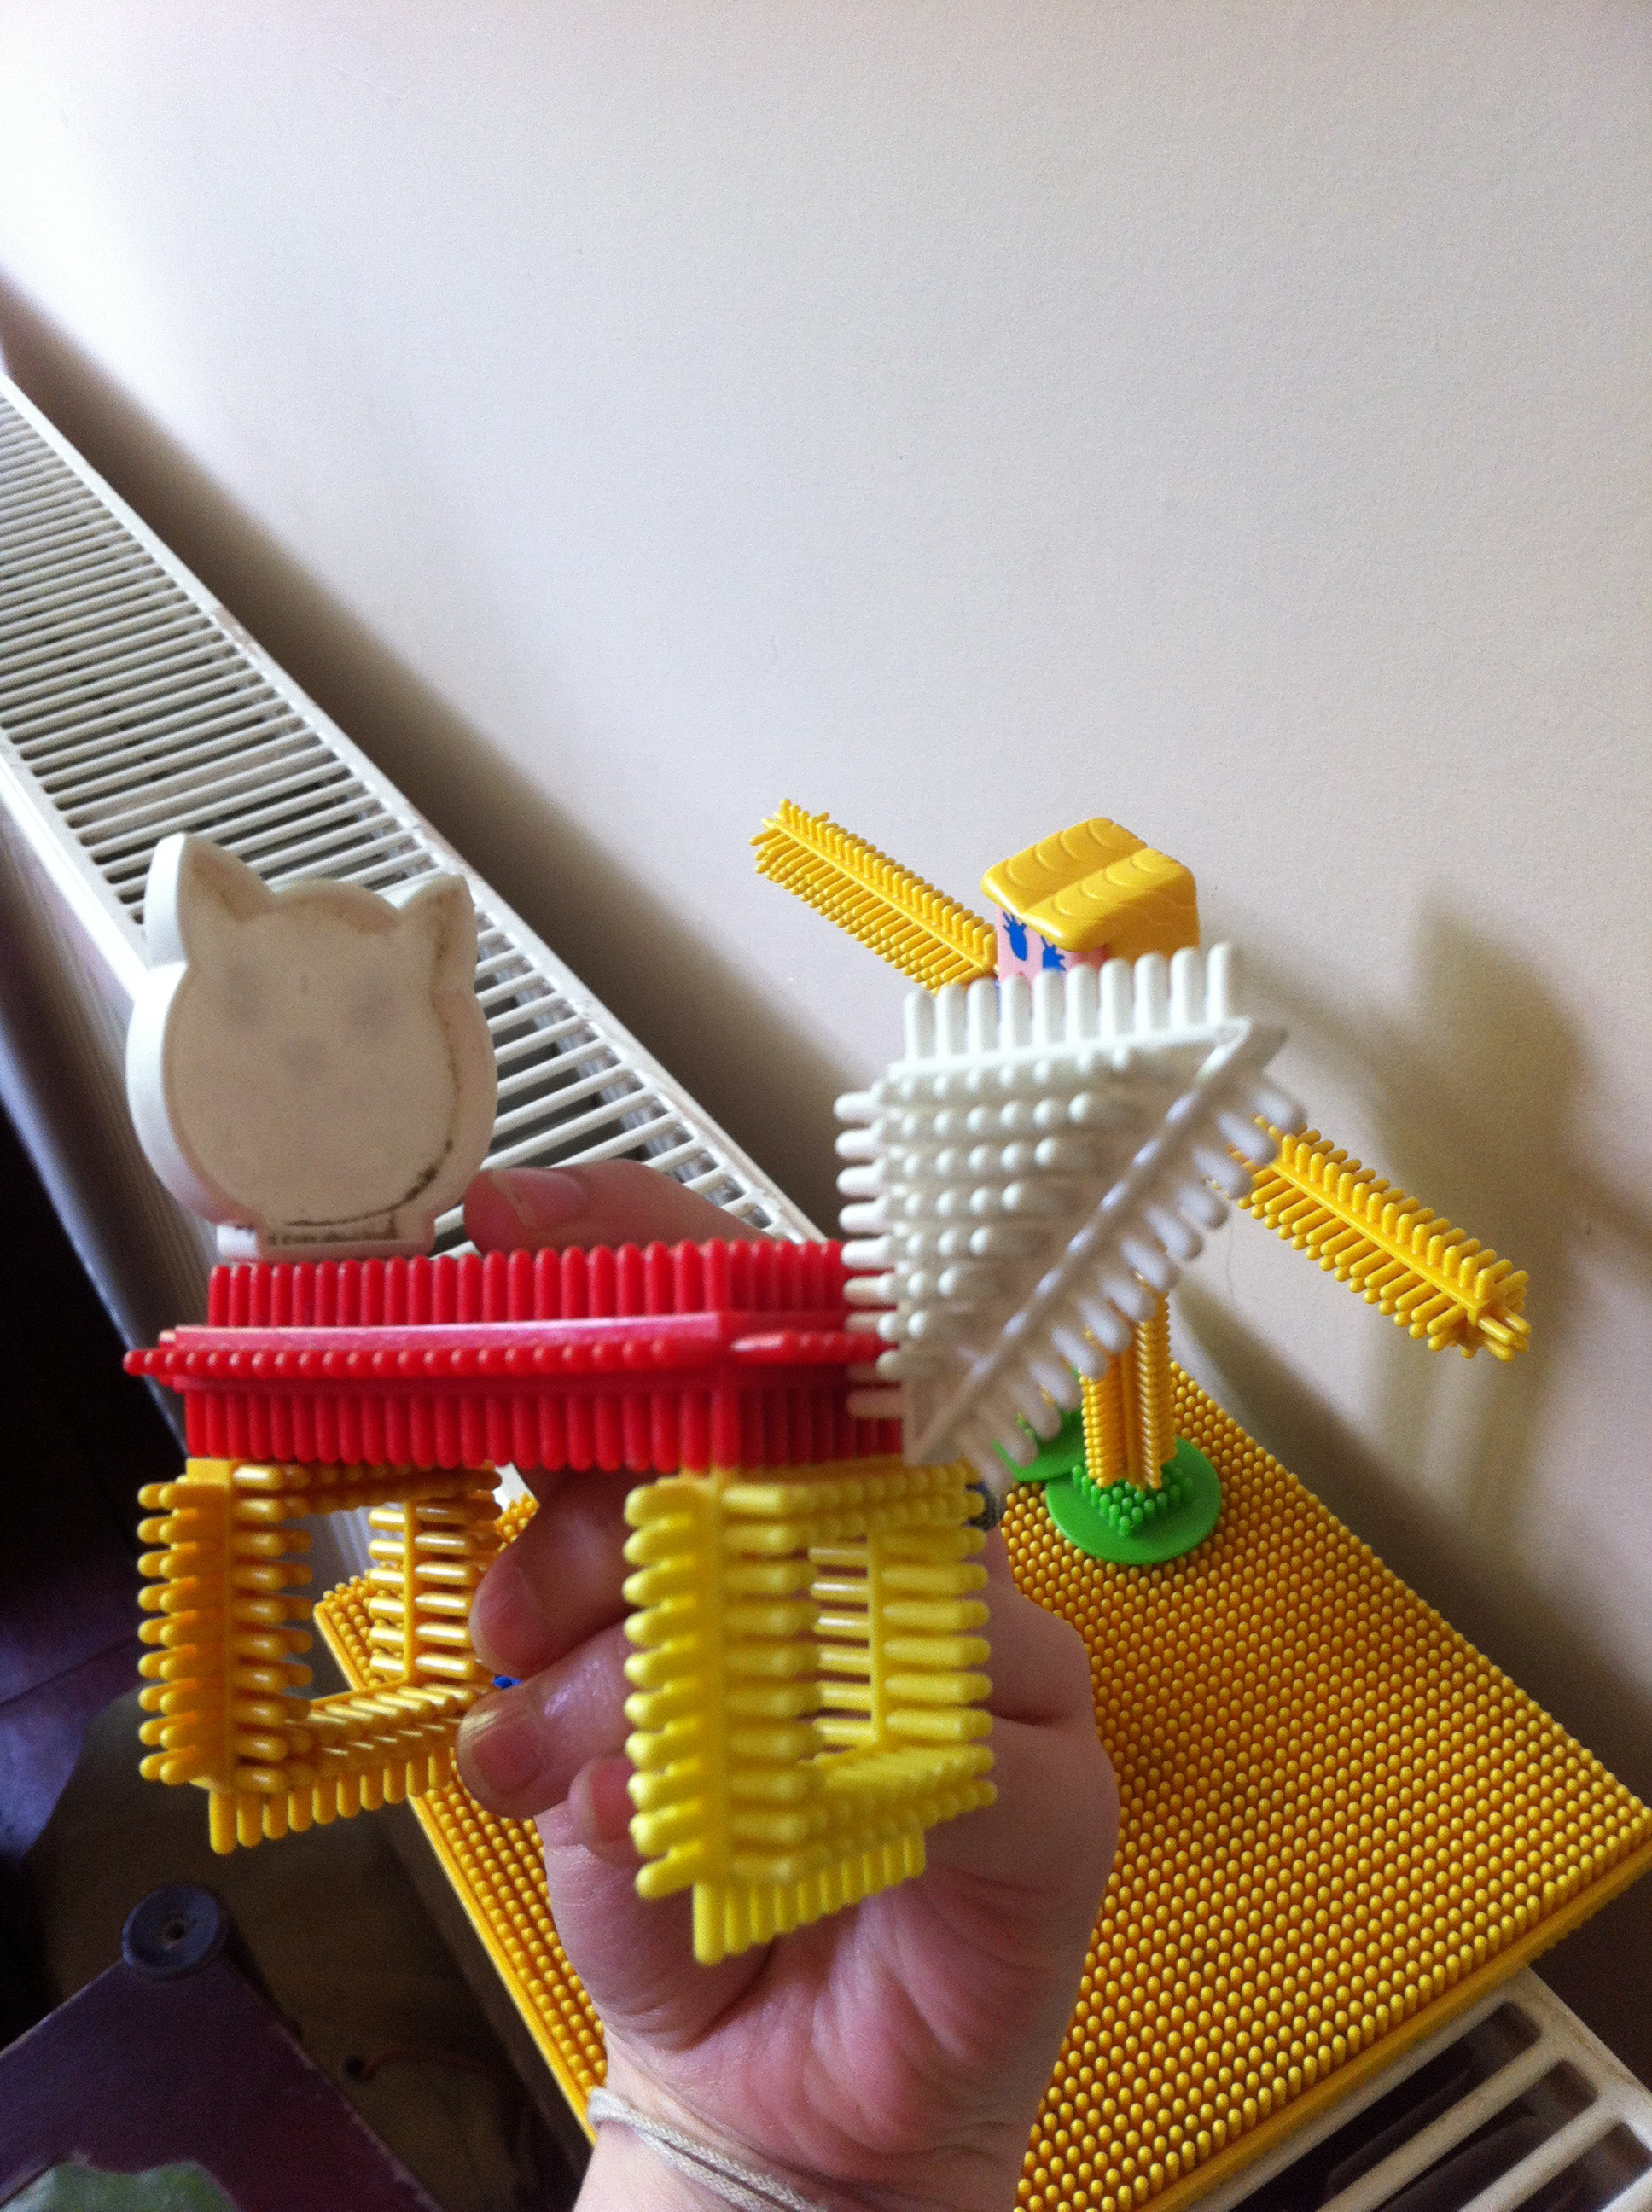 vintage stickle bricks in the homeopath's office